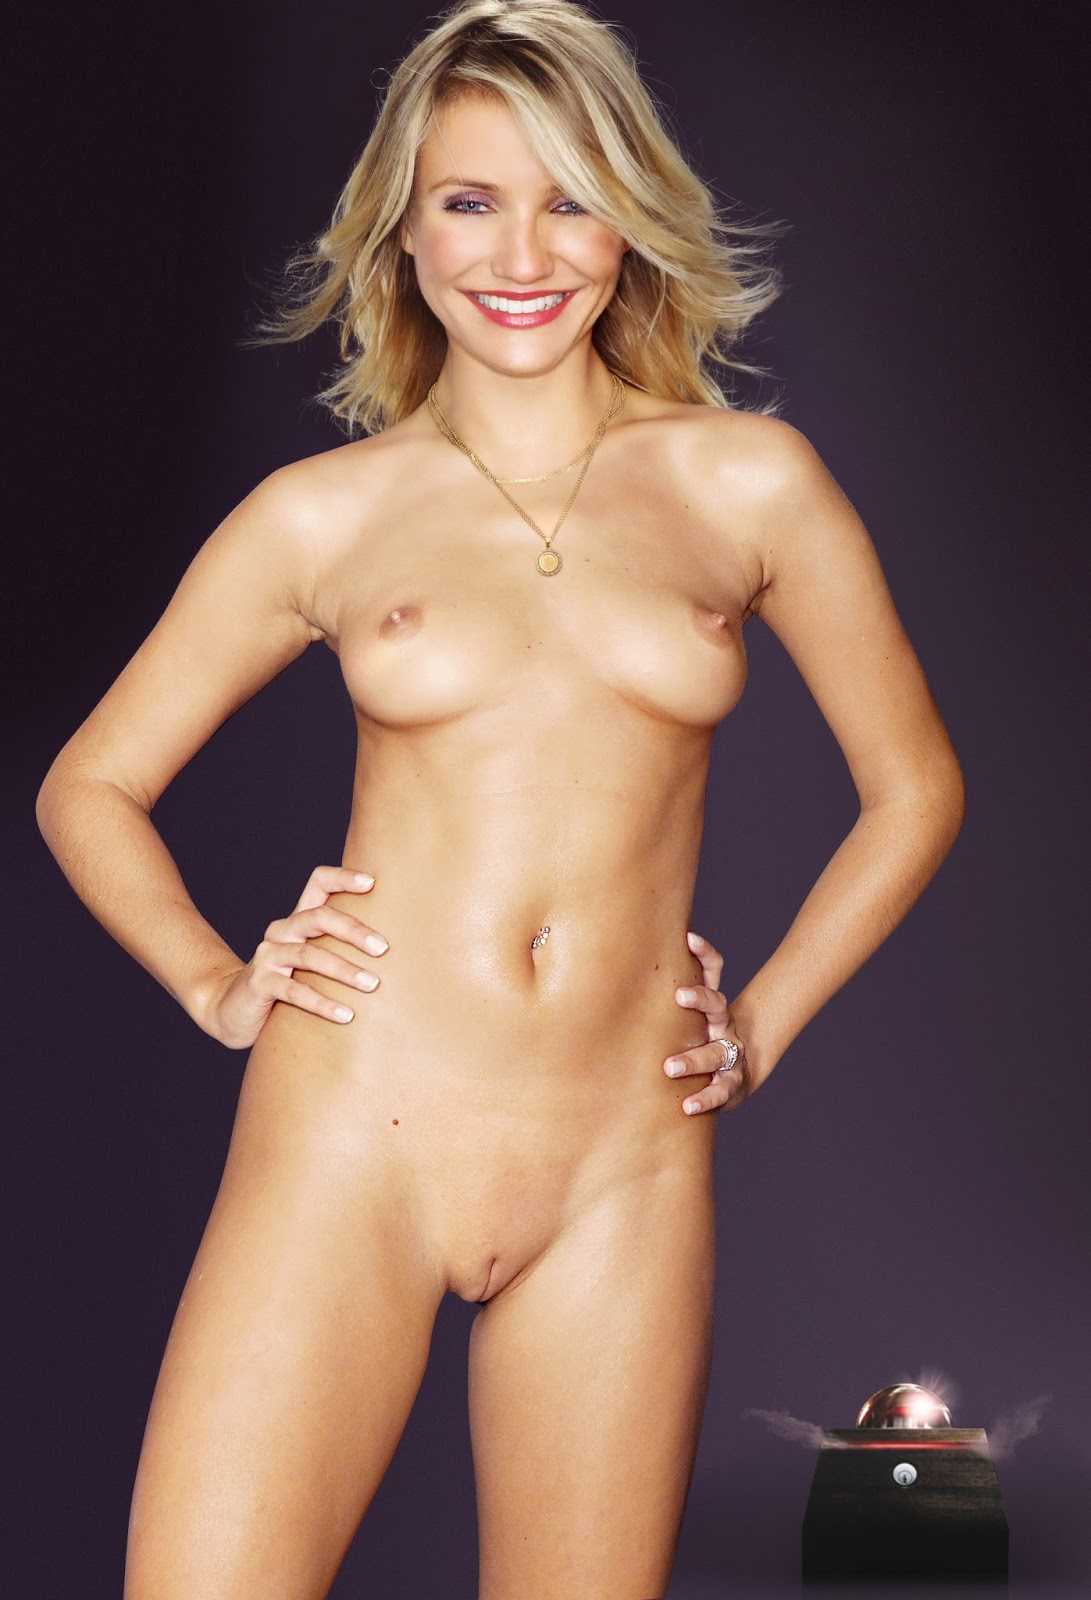 Cameron Diaz In Porn naked pictures if cameron diaz - nude gallery